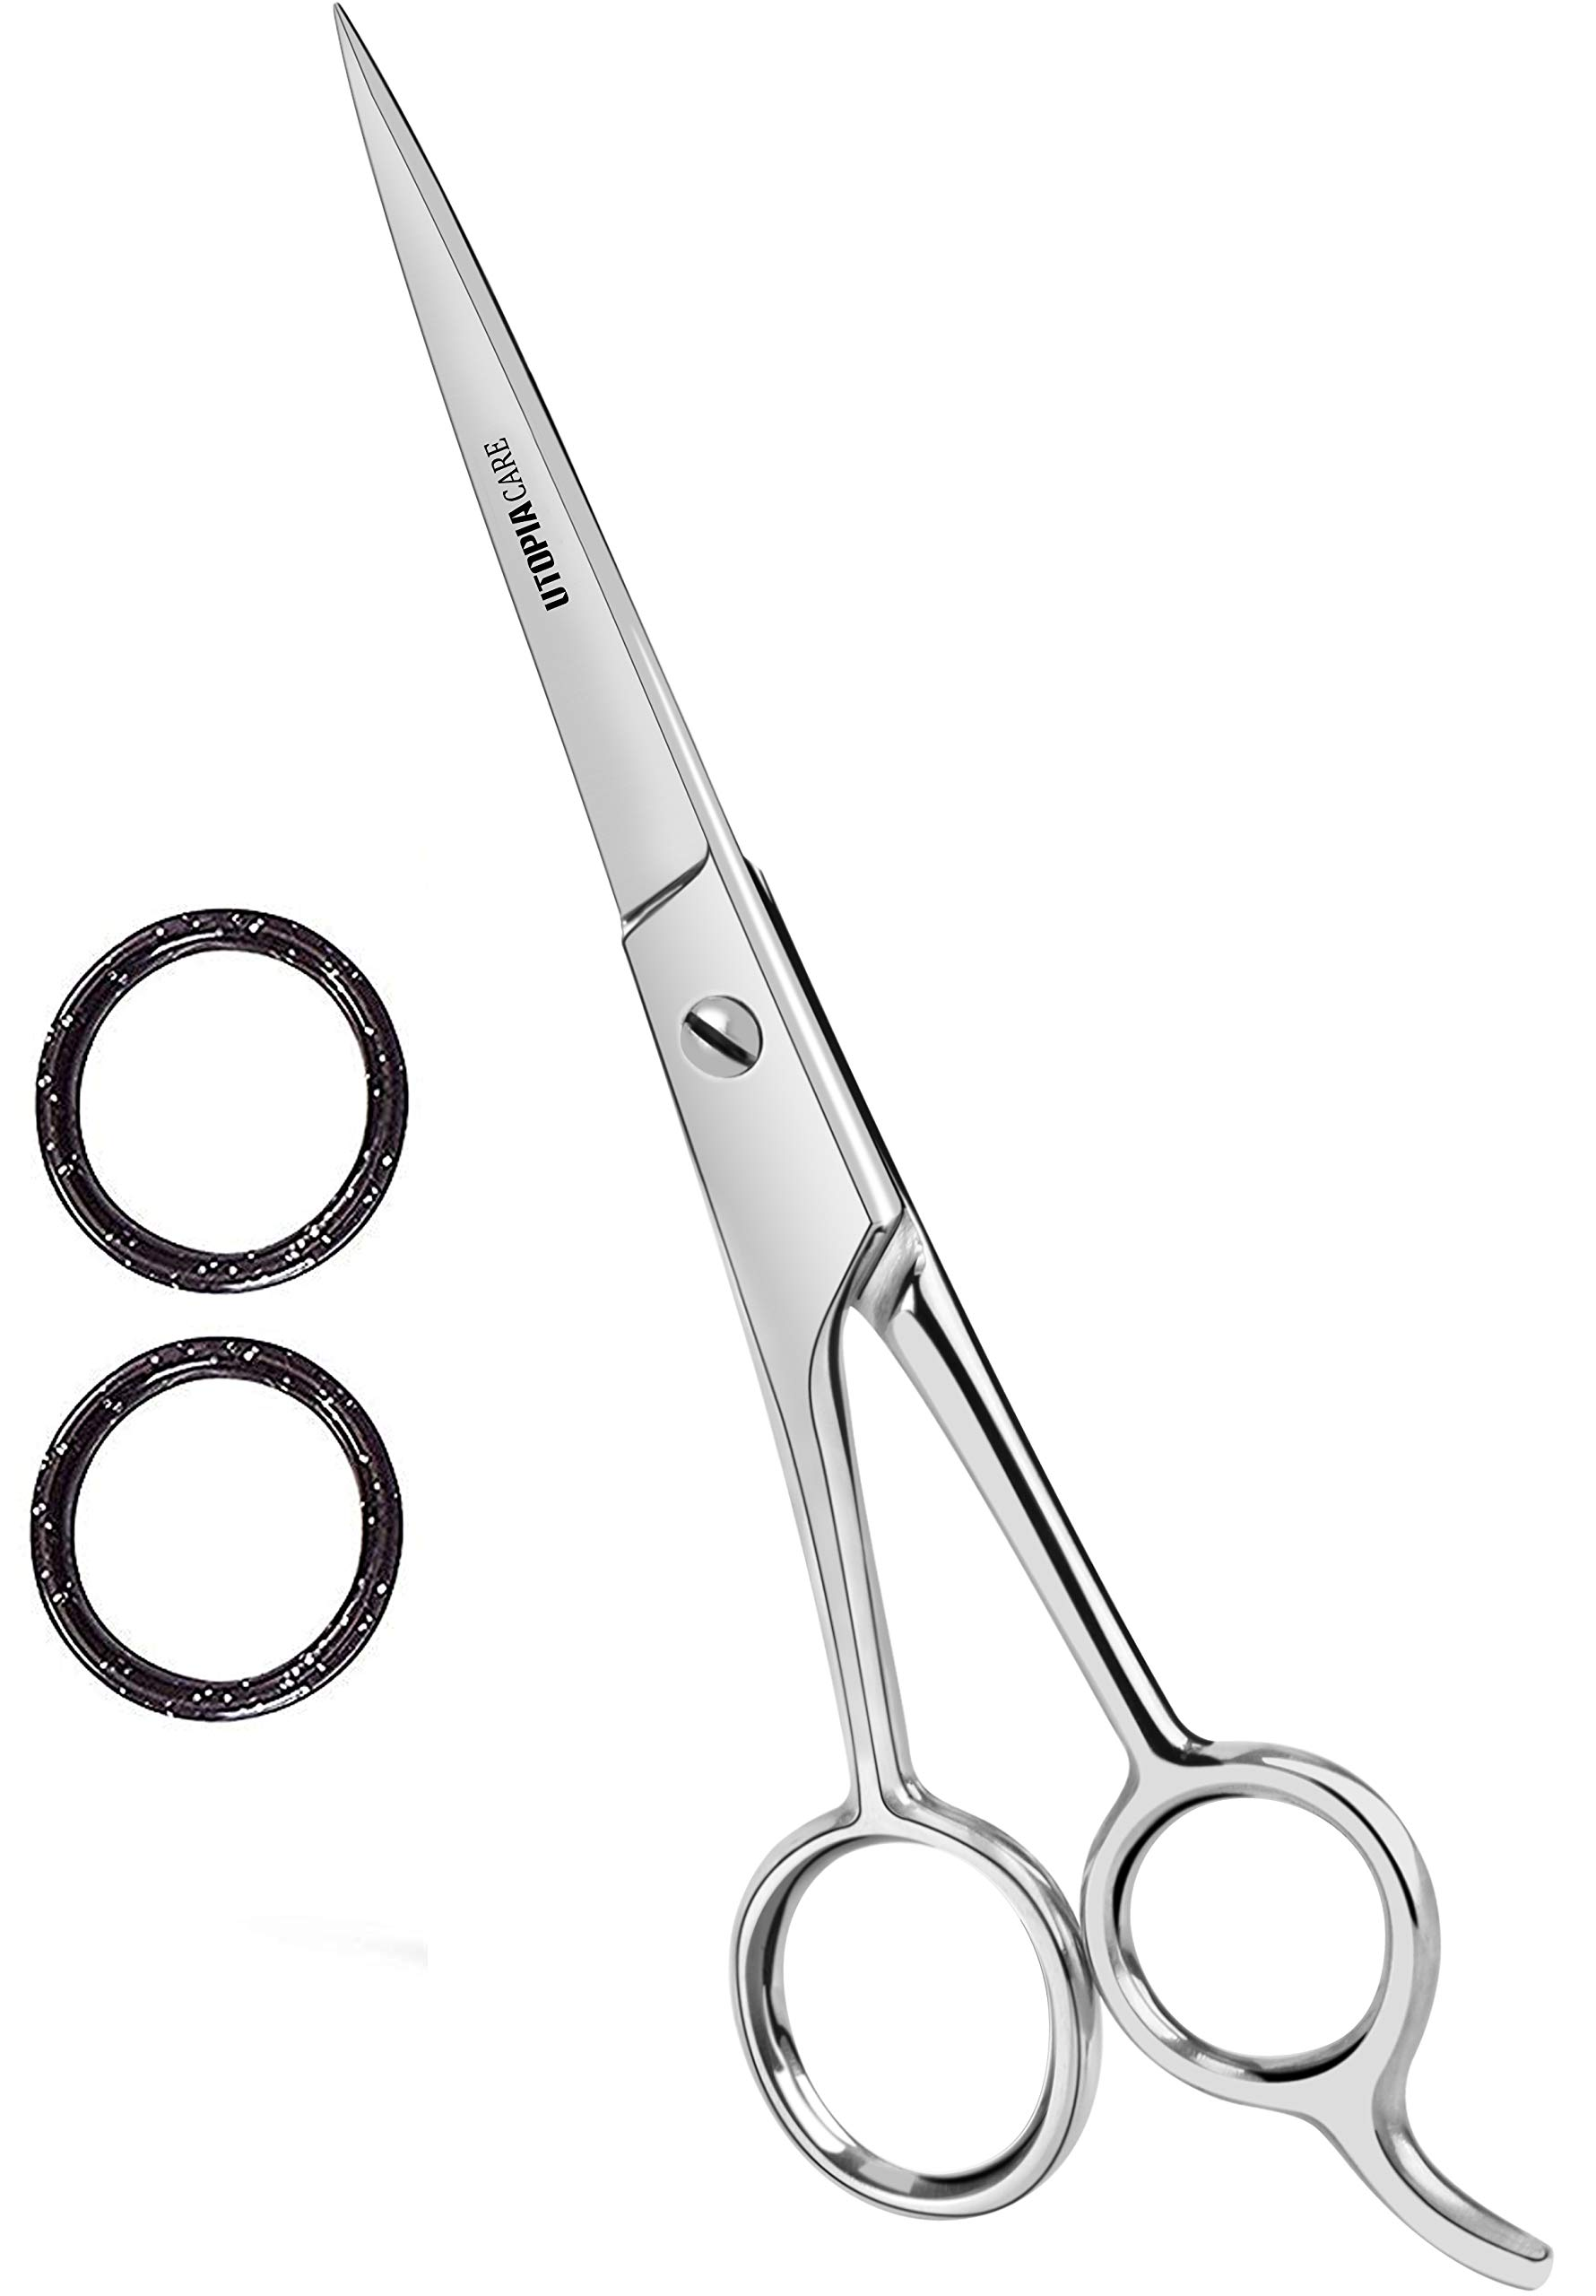 Professional Barber Cutting Scissors 6 5 Inch